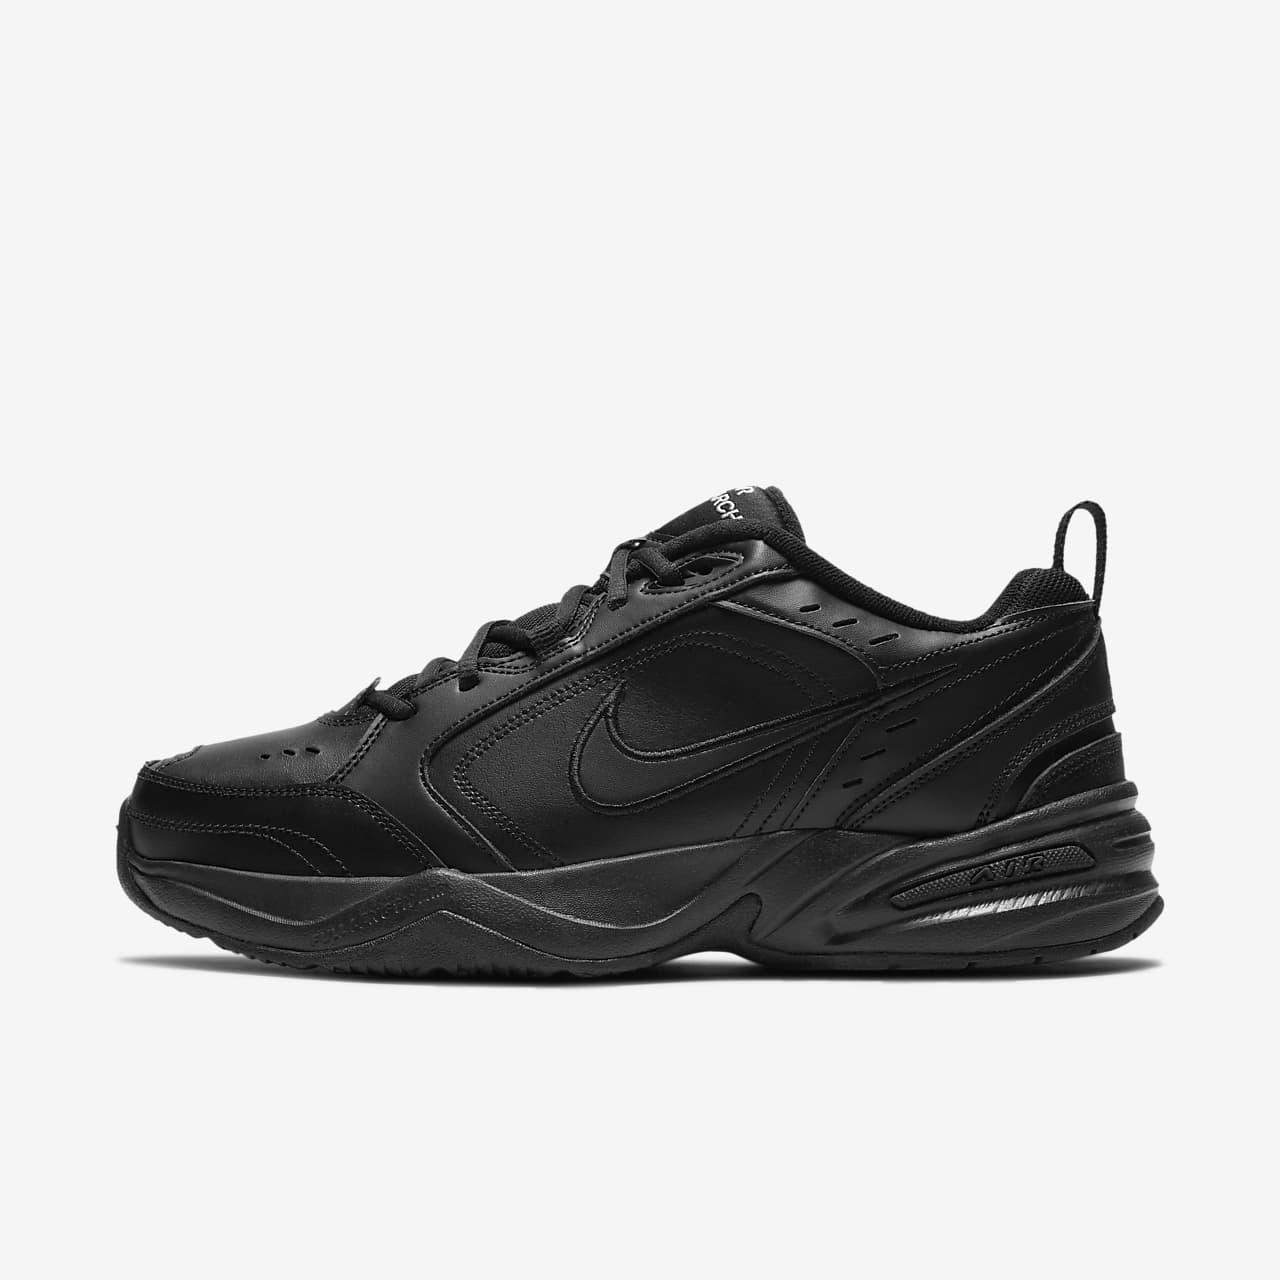 NIKE AIR MONARCH IV Schuhe Trainingsschuhe Fitness Sneaker